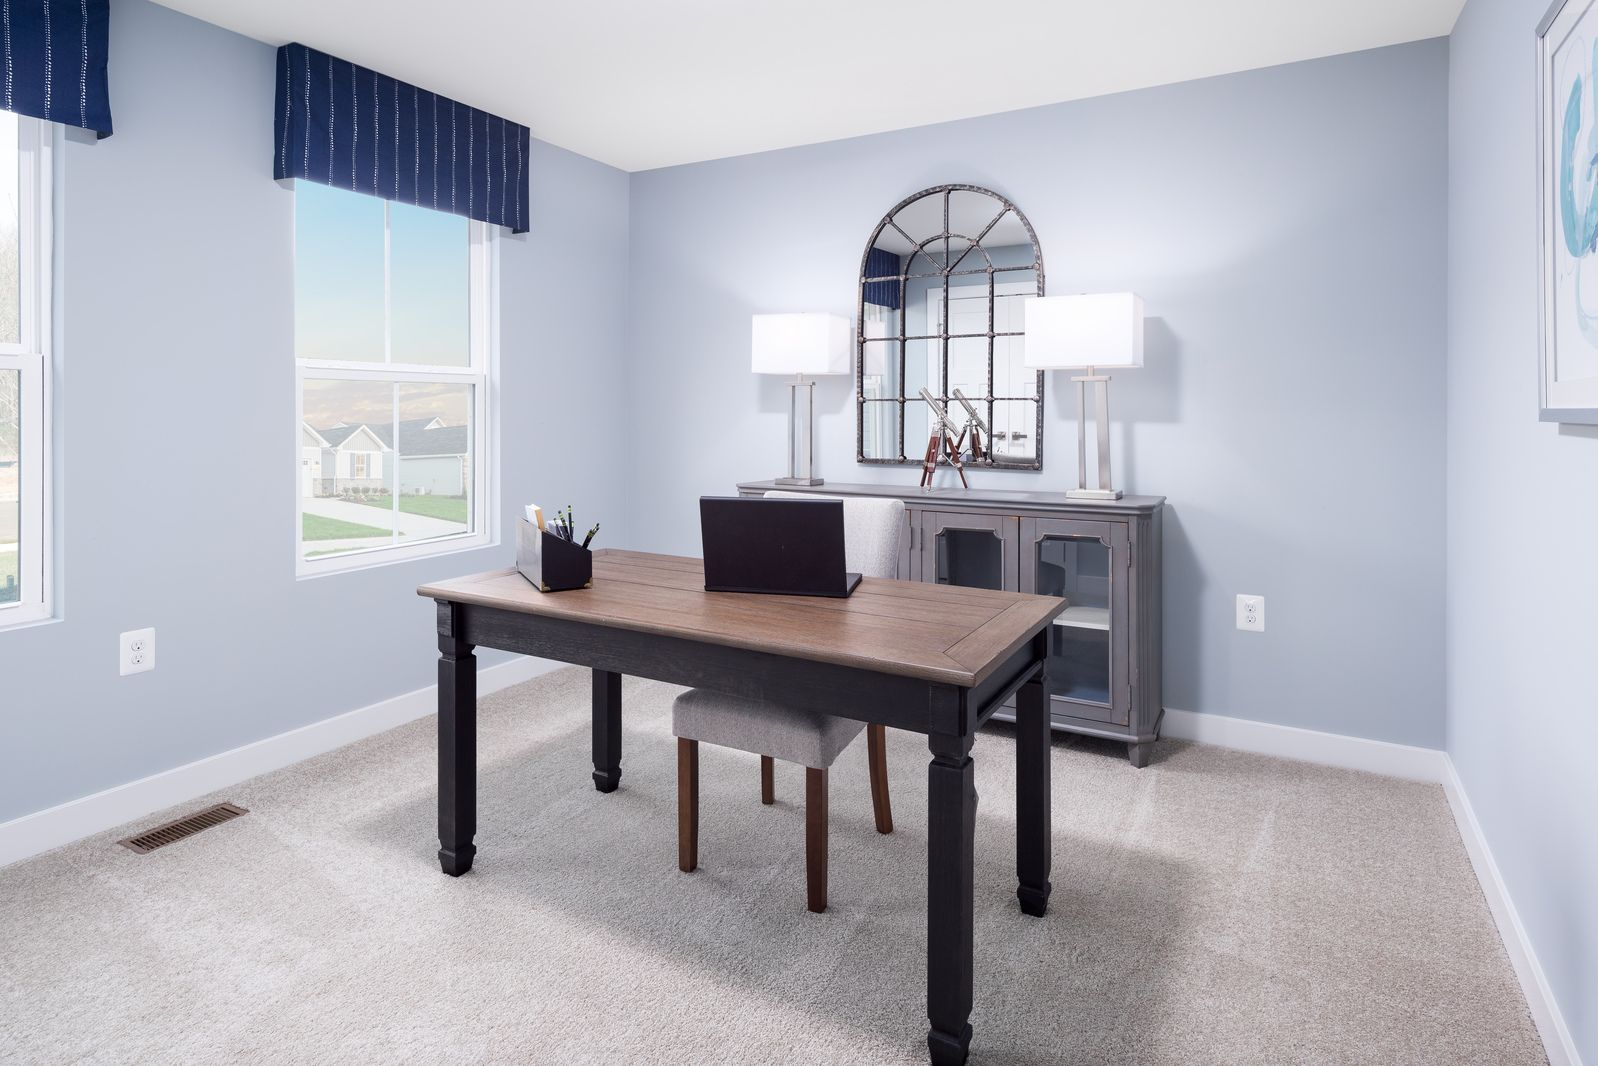 Living Area featured in the Grand Cayman By Ryan Homes in Akron, OH